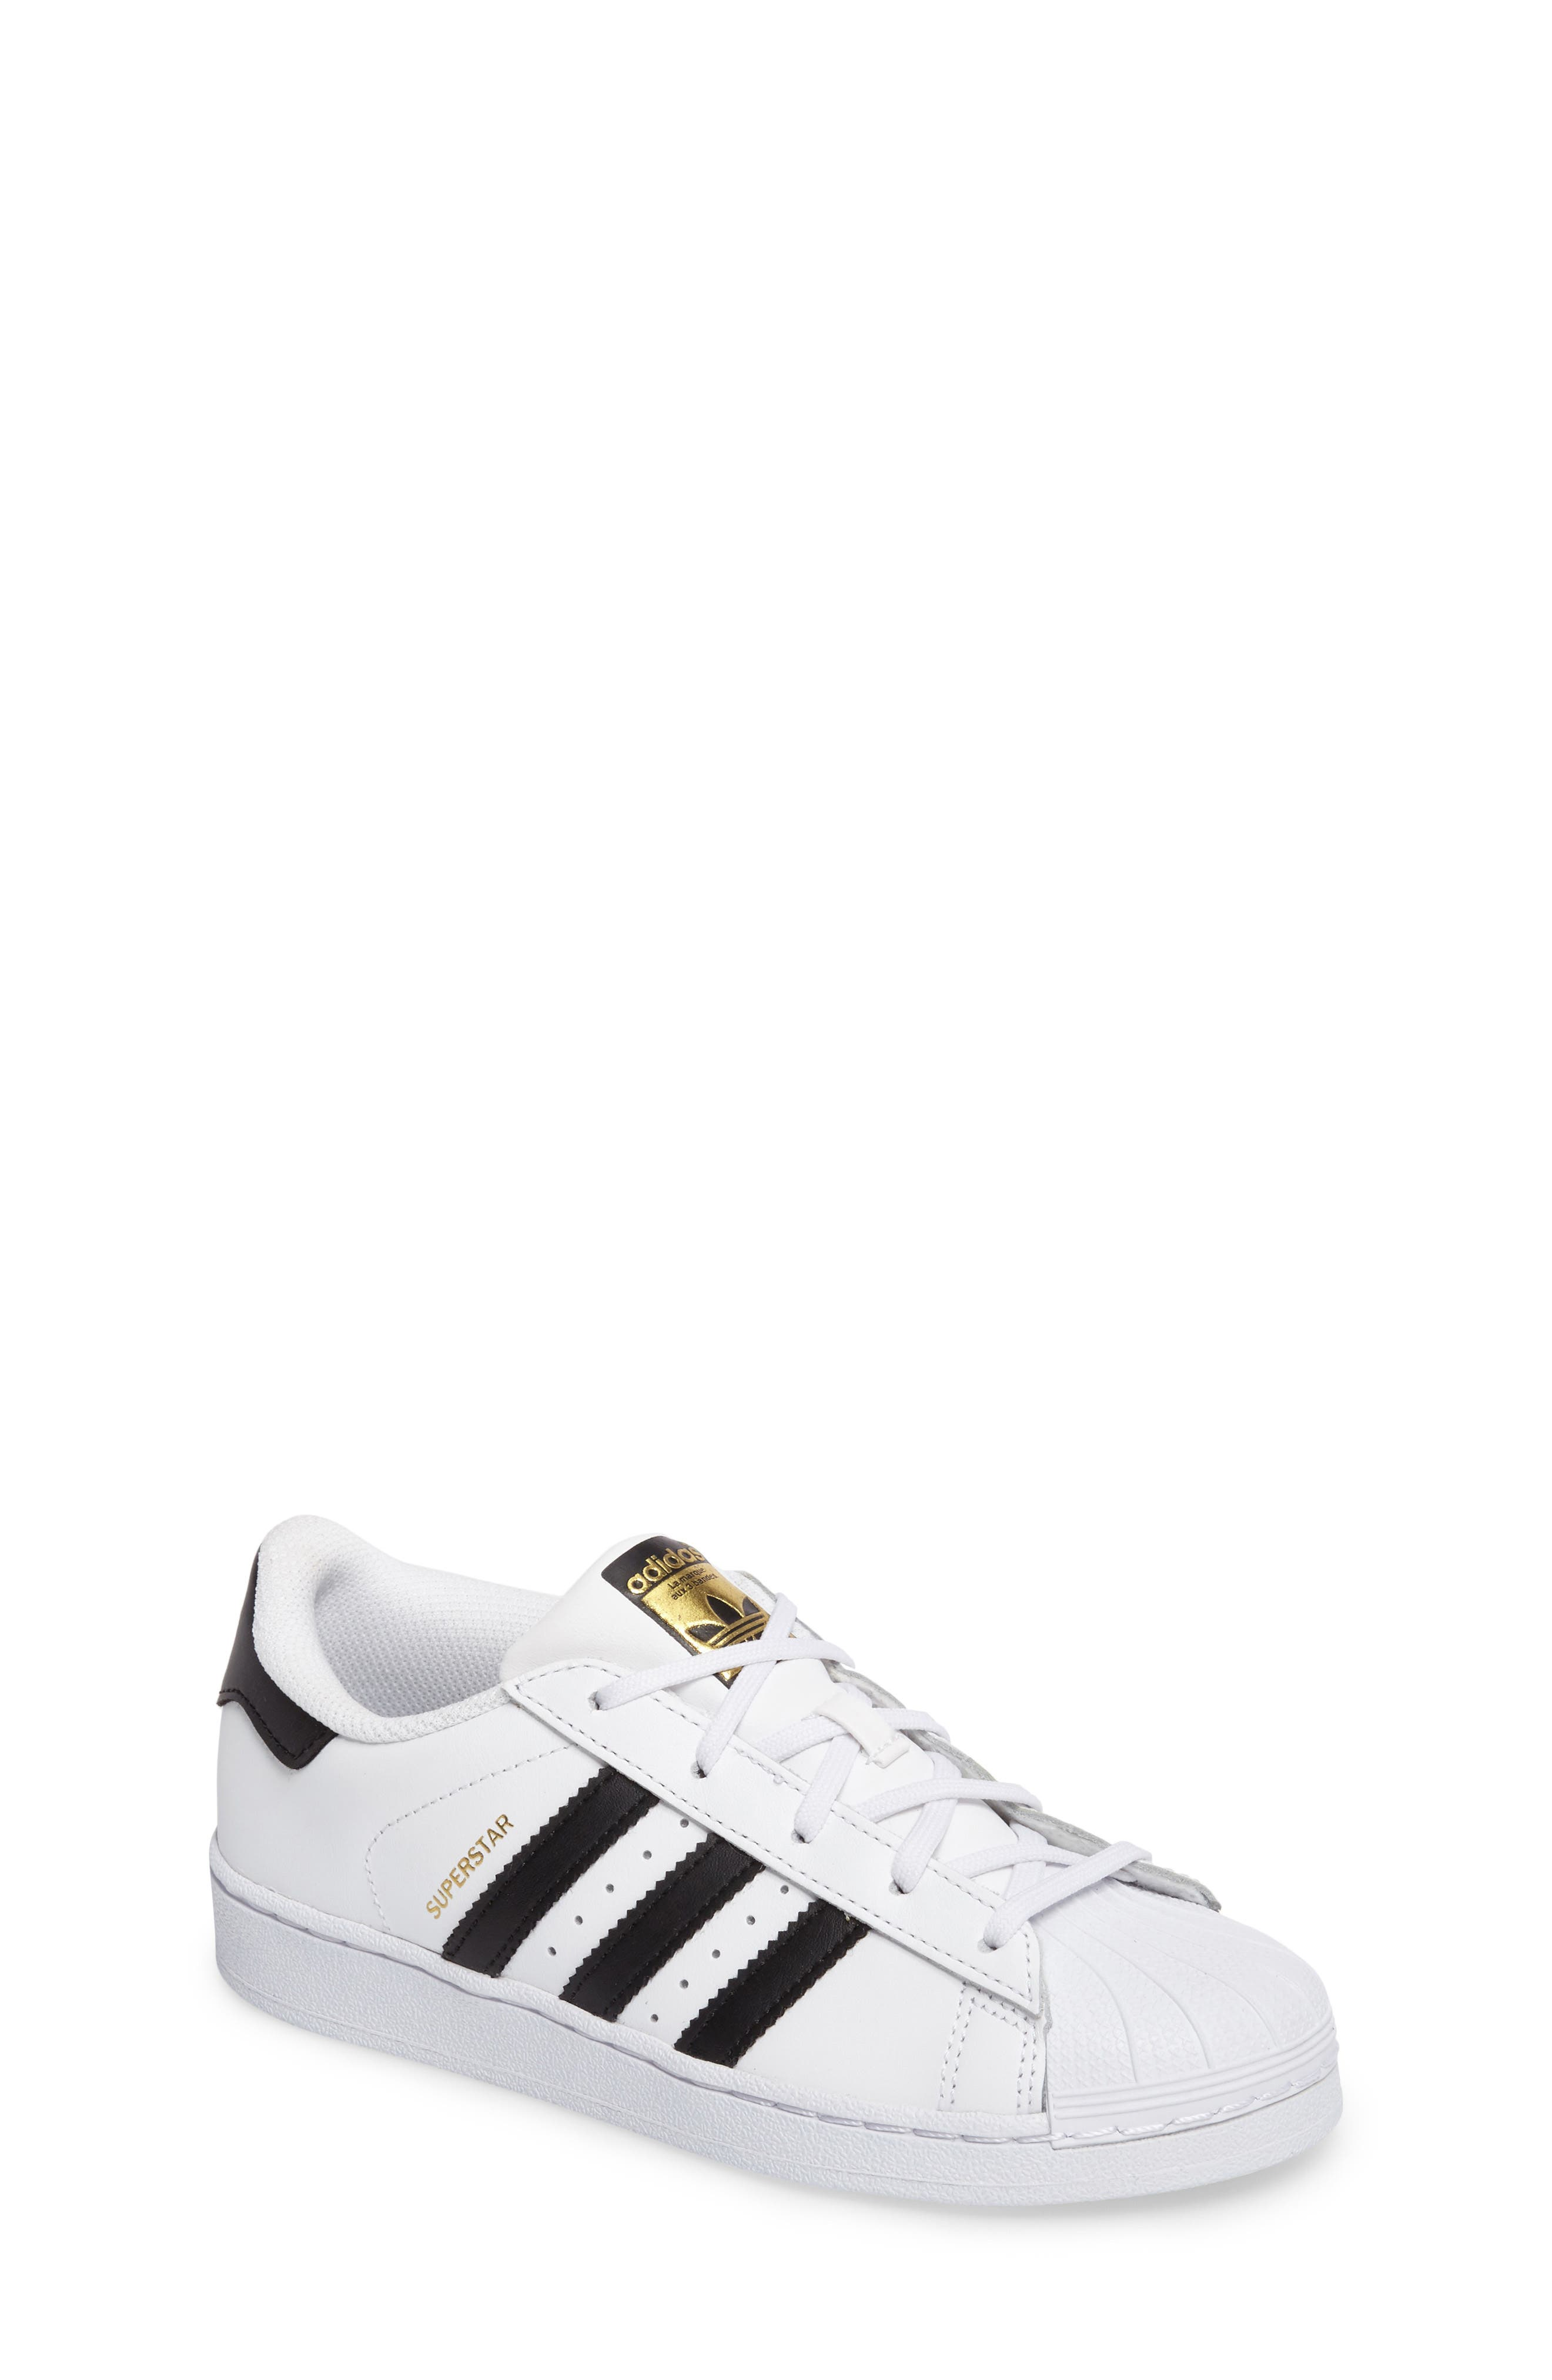 detailed look 289b7 239b3 adidas Women s Shoes